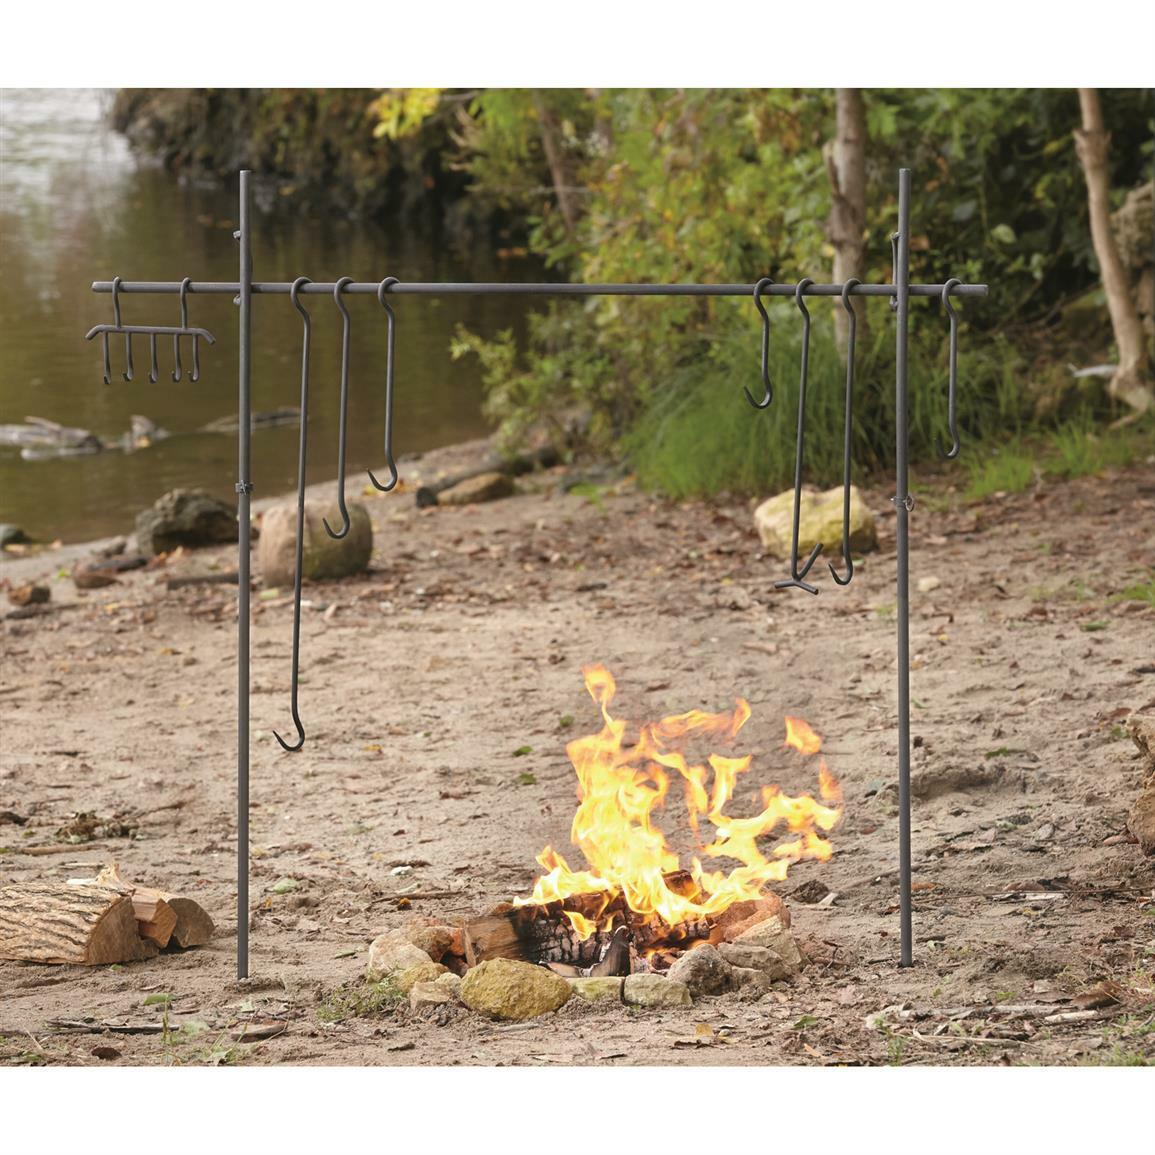 Outdoor w/ Campfire Cooking Equipment Camping Hook Set Heavy-Duty Iron w/ Outdoor Carry Bag 95dea8